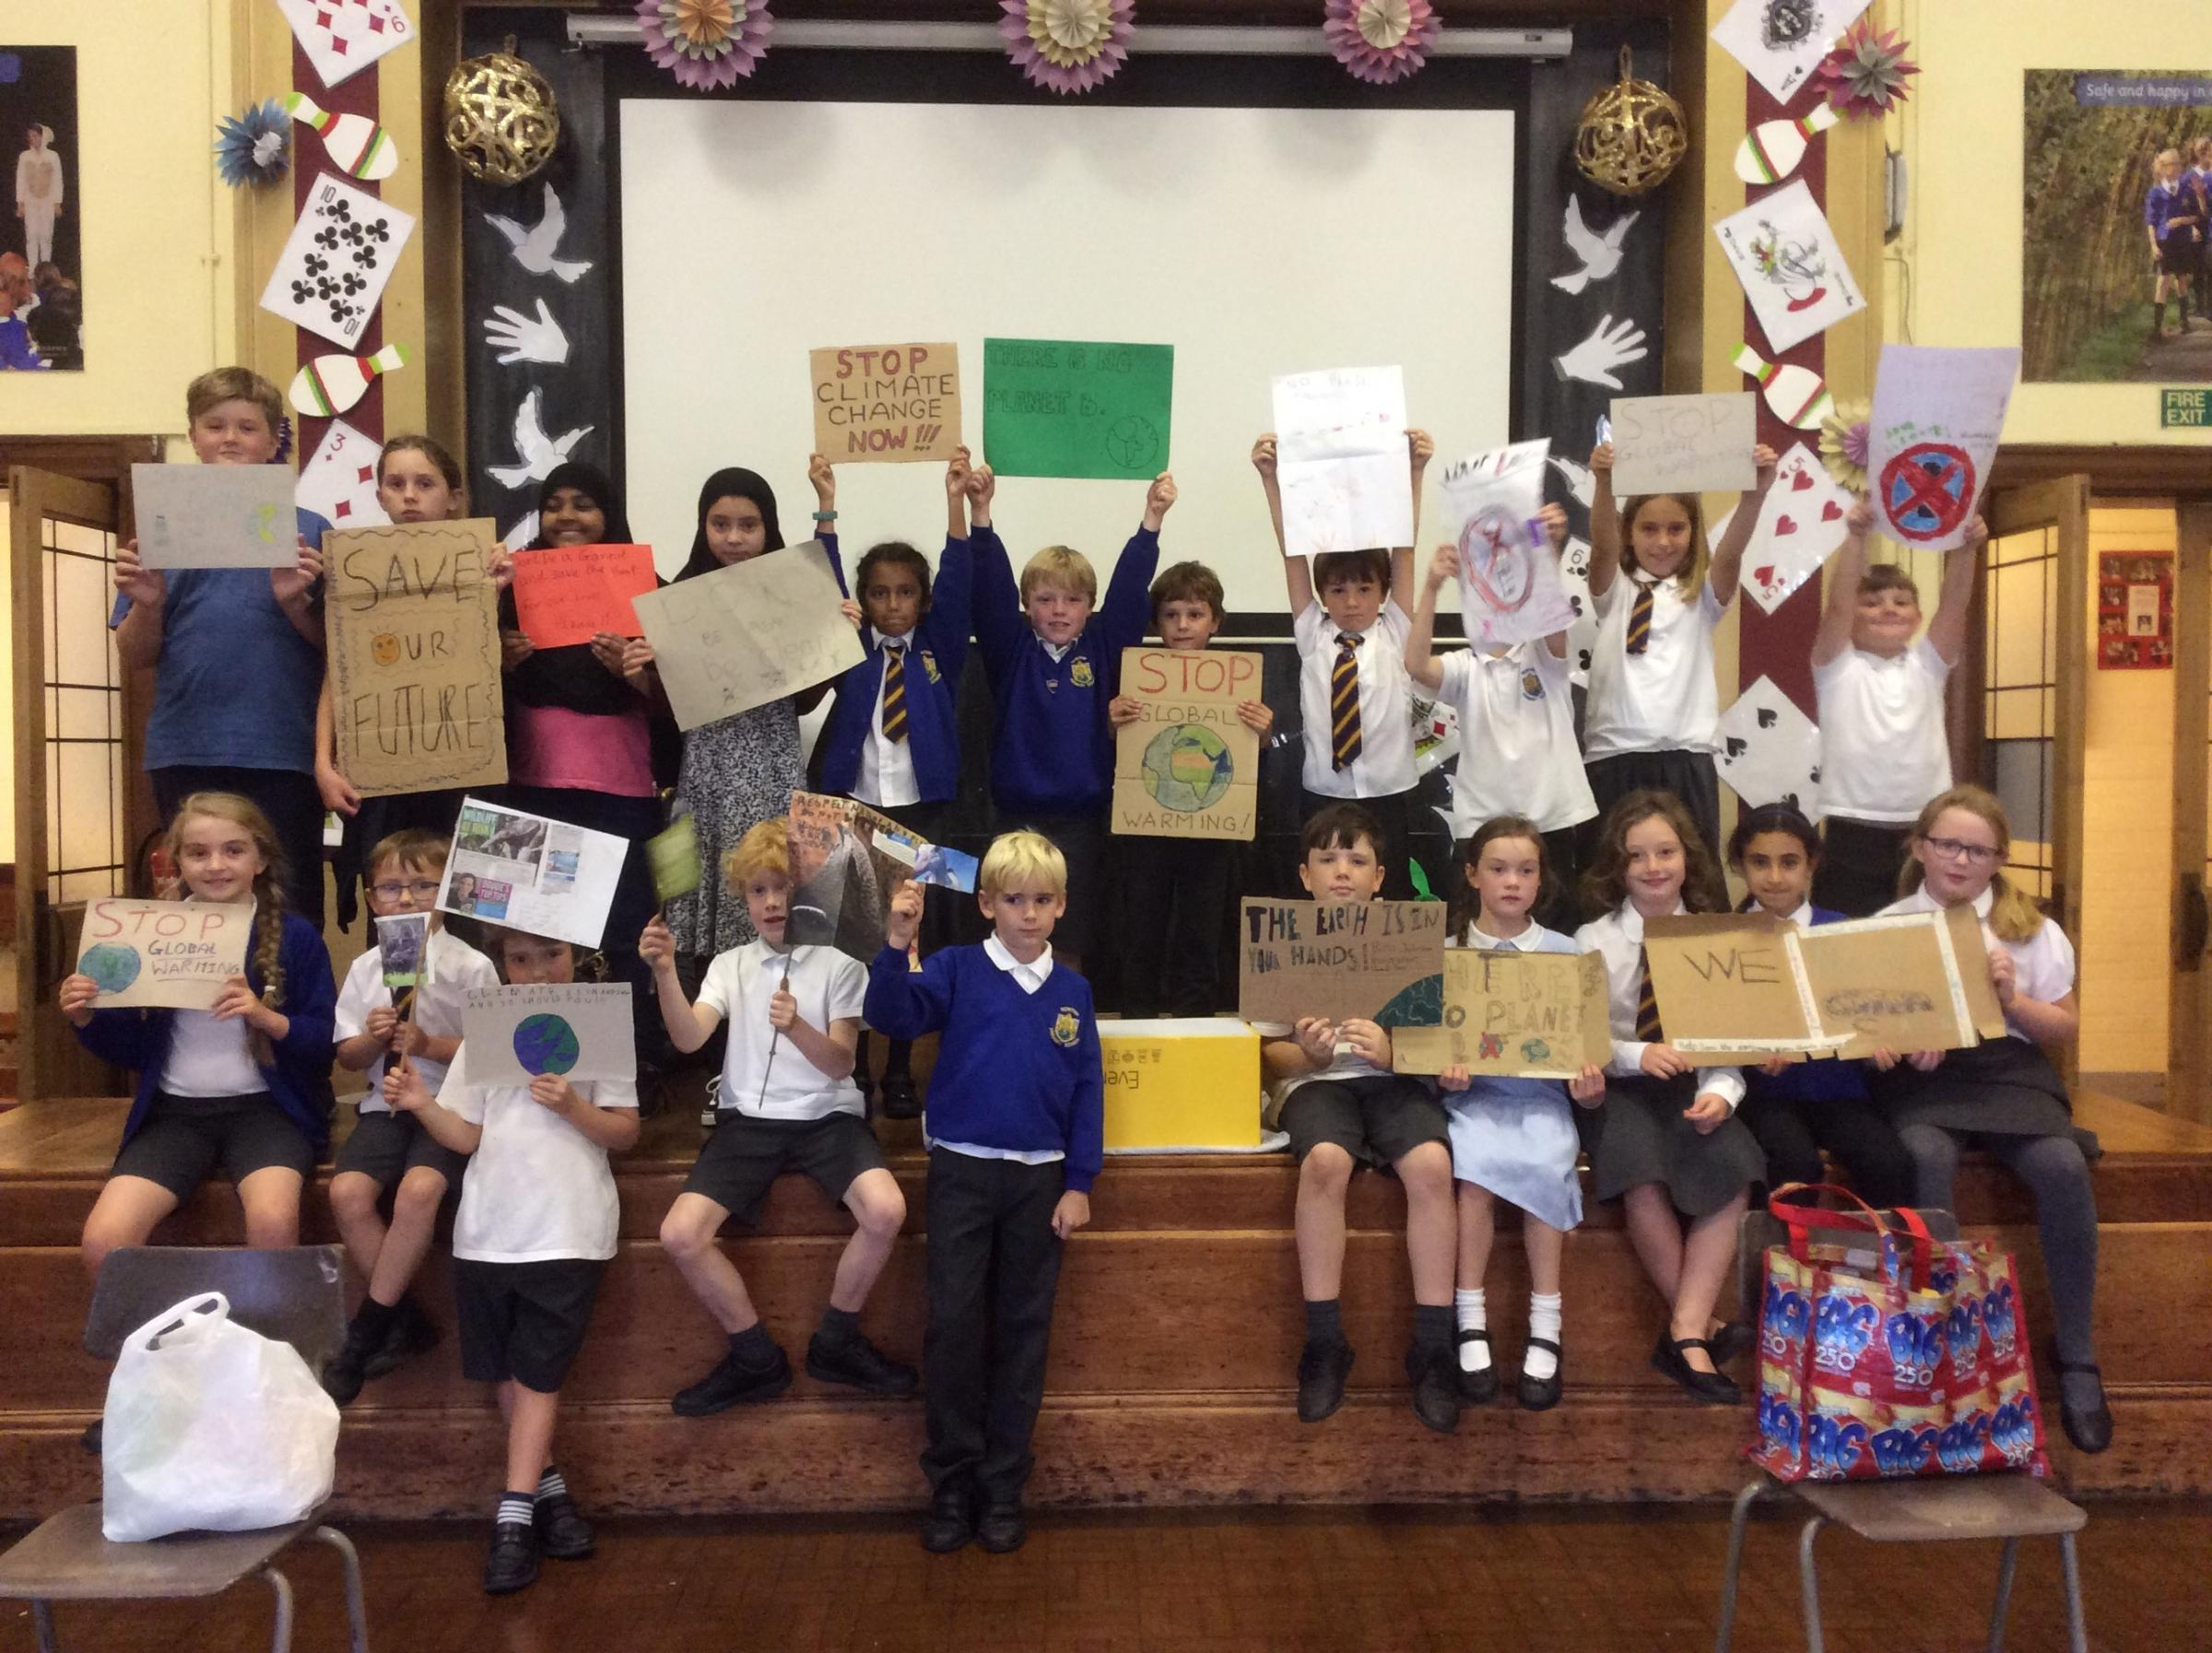 Newton Primary School Chester pupils hold 'Action day' to promote eco message